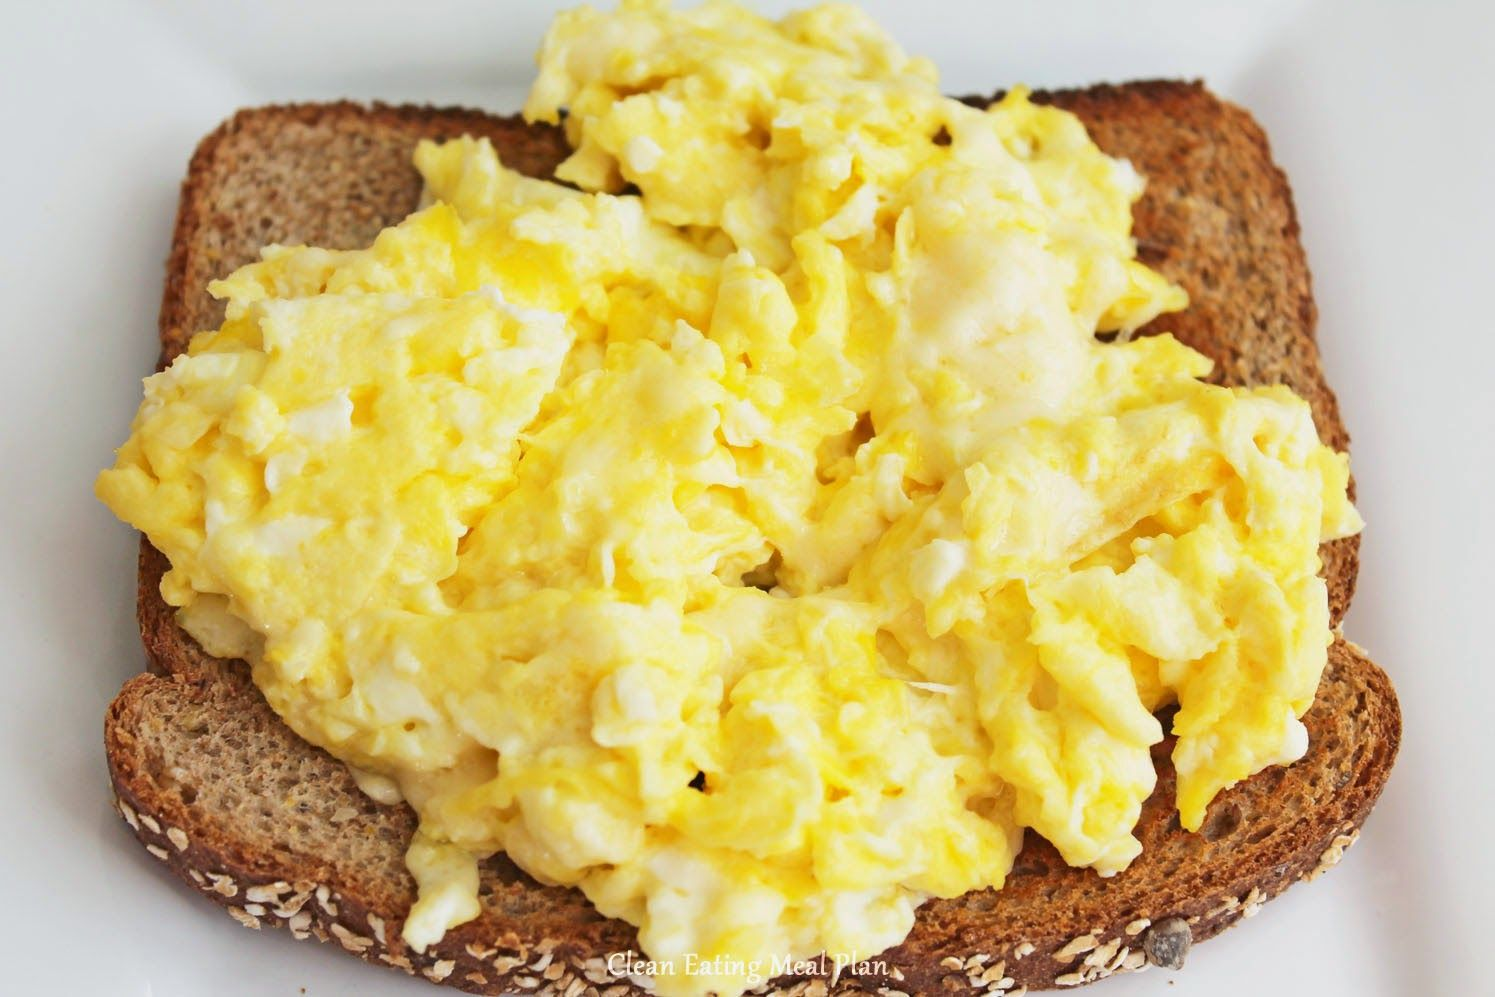 Healthy Breakfast Scrambled Eggs With All Natural Colby Jack Cheese And Real Butter Over Whole Wheat Toast